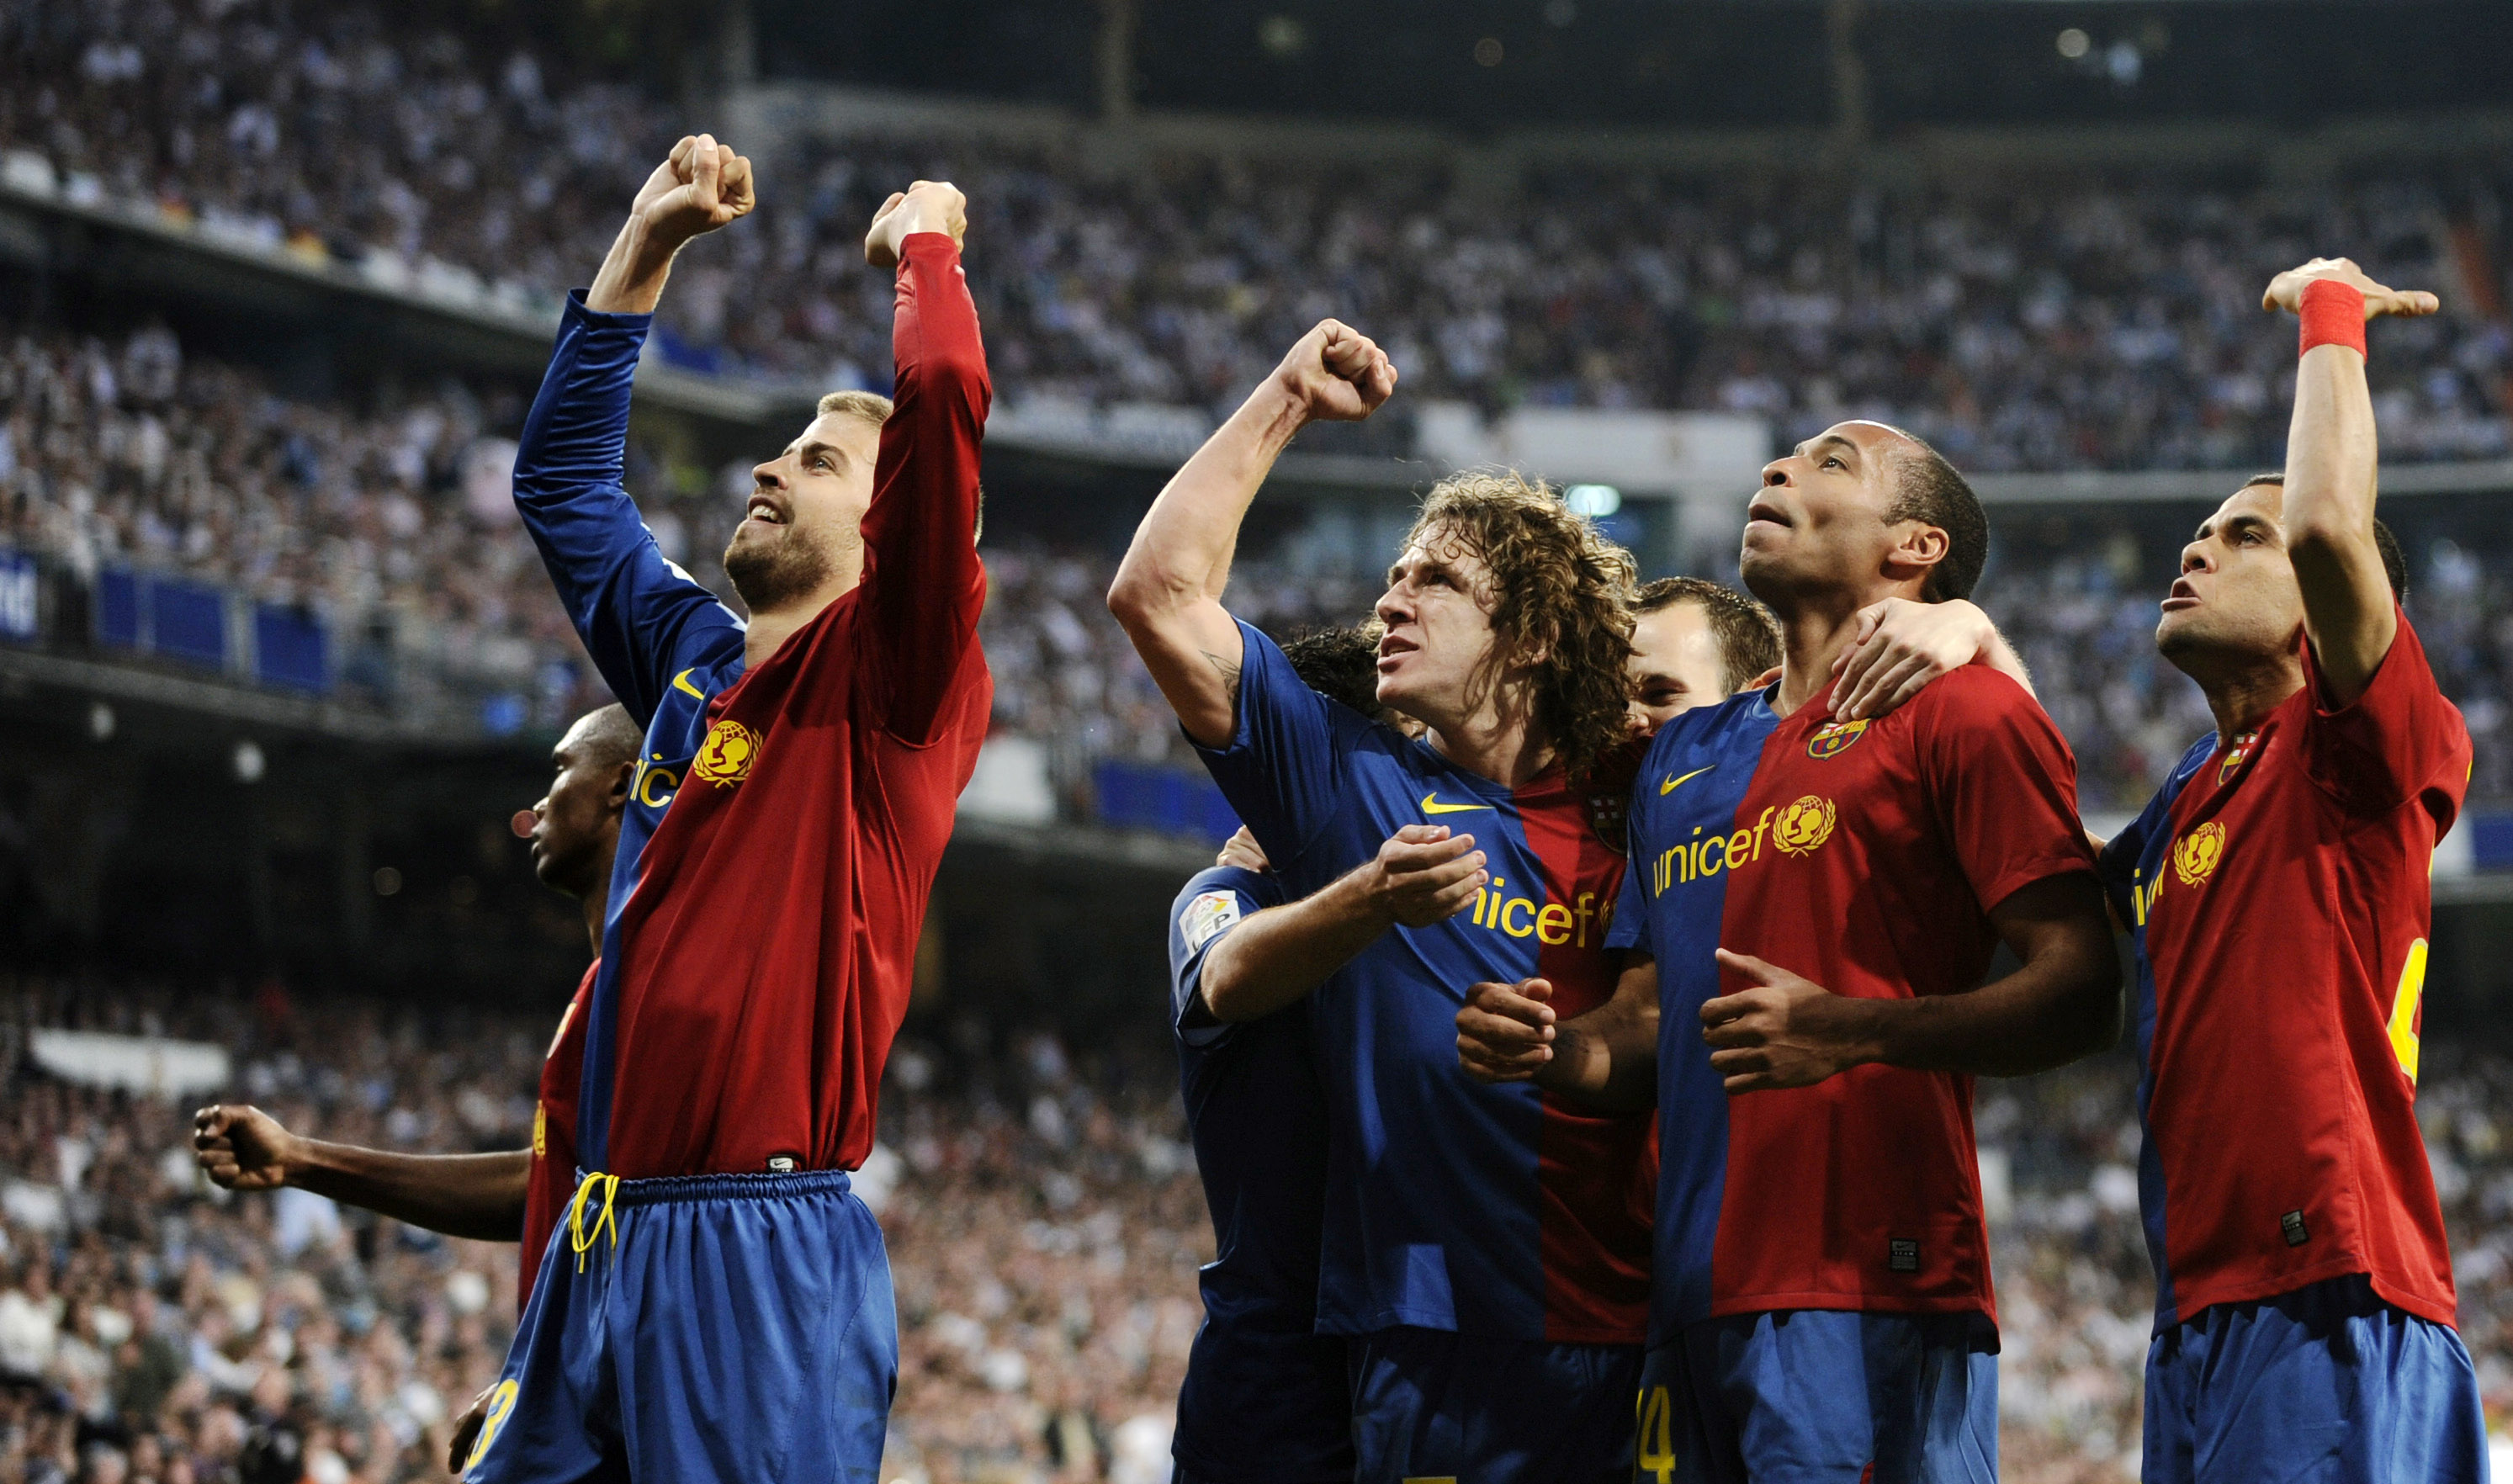 Barcelona's players celebrates their sixth goal against Real Madrid withduring their La Liga soccer match at the Santiago Bernabeu stadium in Madrid, Saturday, May 2, 2009. Barcelona won the match 6-2. (AP Photo/Daniel Ochoa de Olza)